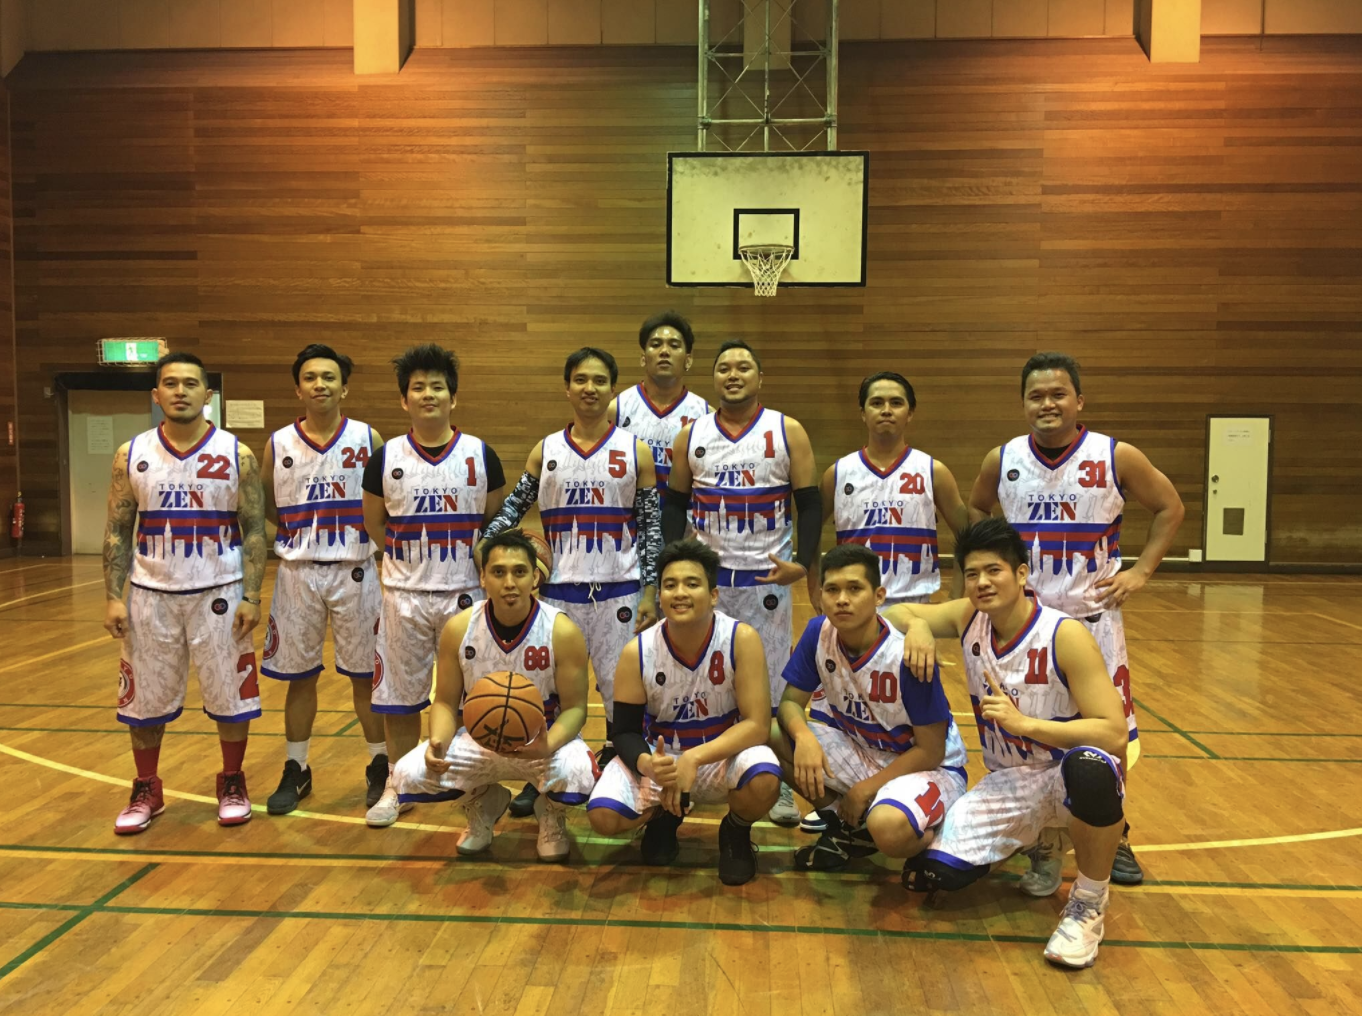 The team from Toyko Zen Basketball in Japan is just one of over 25 countries where Wooter Apparel has designed team jerseys and uniforms to be showcased on a global level.